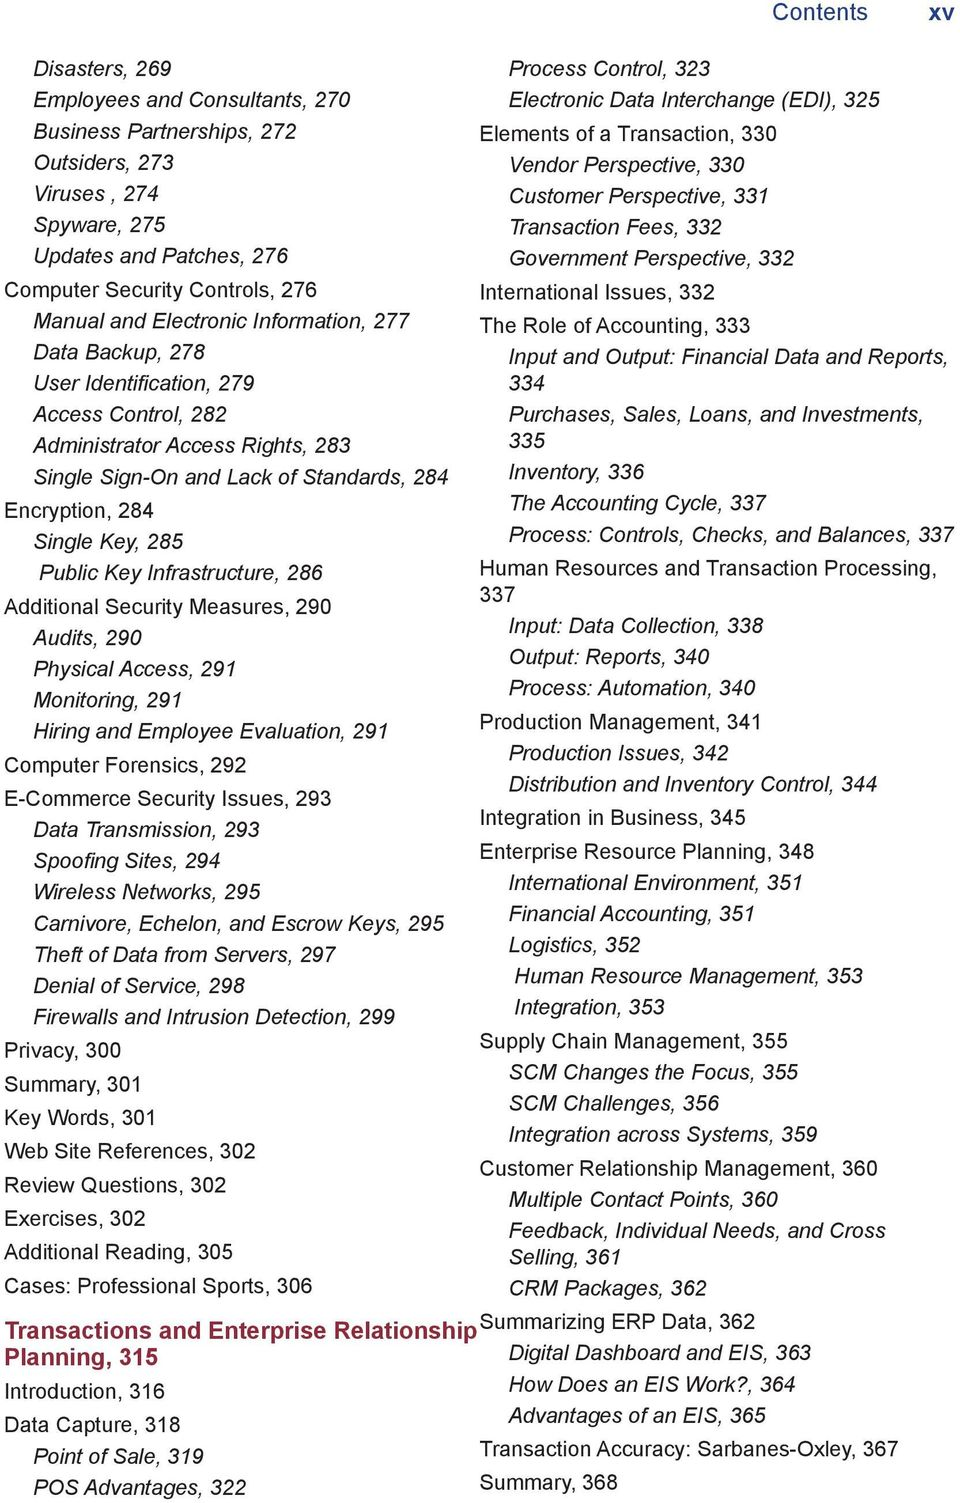 Infrastructure, 286 Additional Security Measures, 290 Audits, 290 Physical Access, 291 Monitoring, 291 Hiring and Employee Evaluation, 291 Computer Forensics, 292 E-Commerce Security Issues, 293 Data